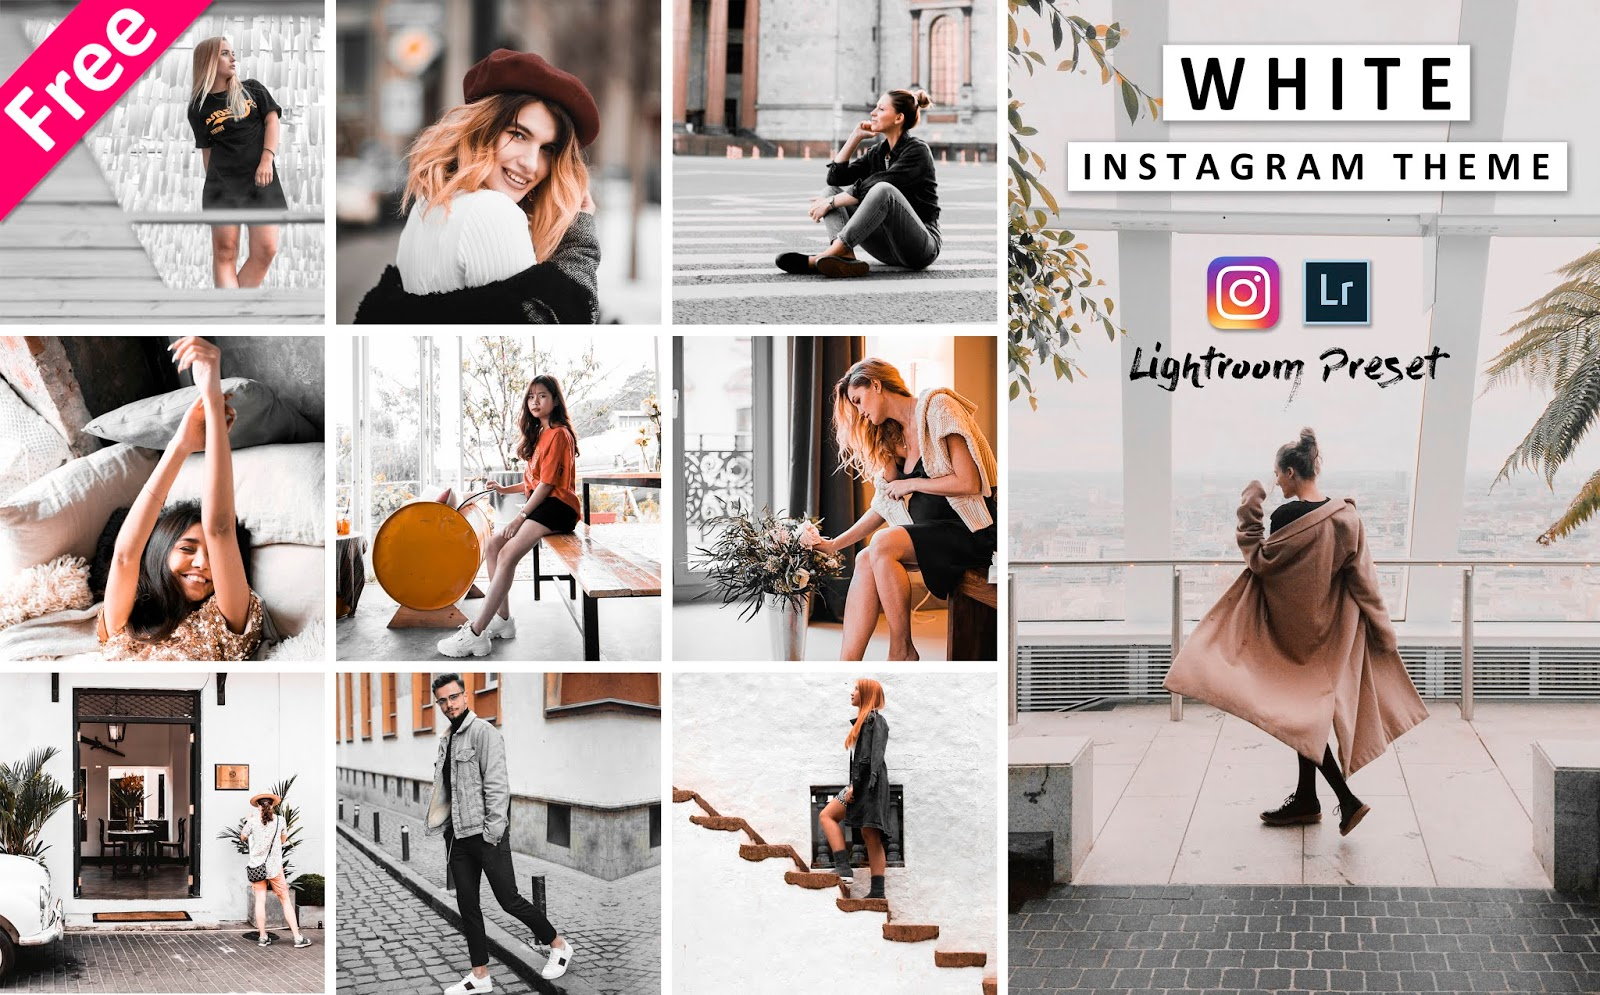 Download Free Instagram White Theme Preset | How to Create White Theme on Instagram in Lightroom